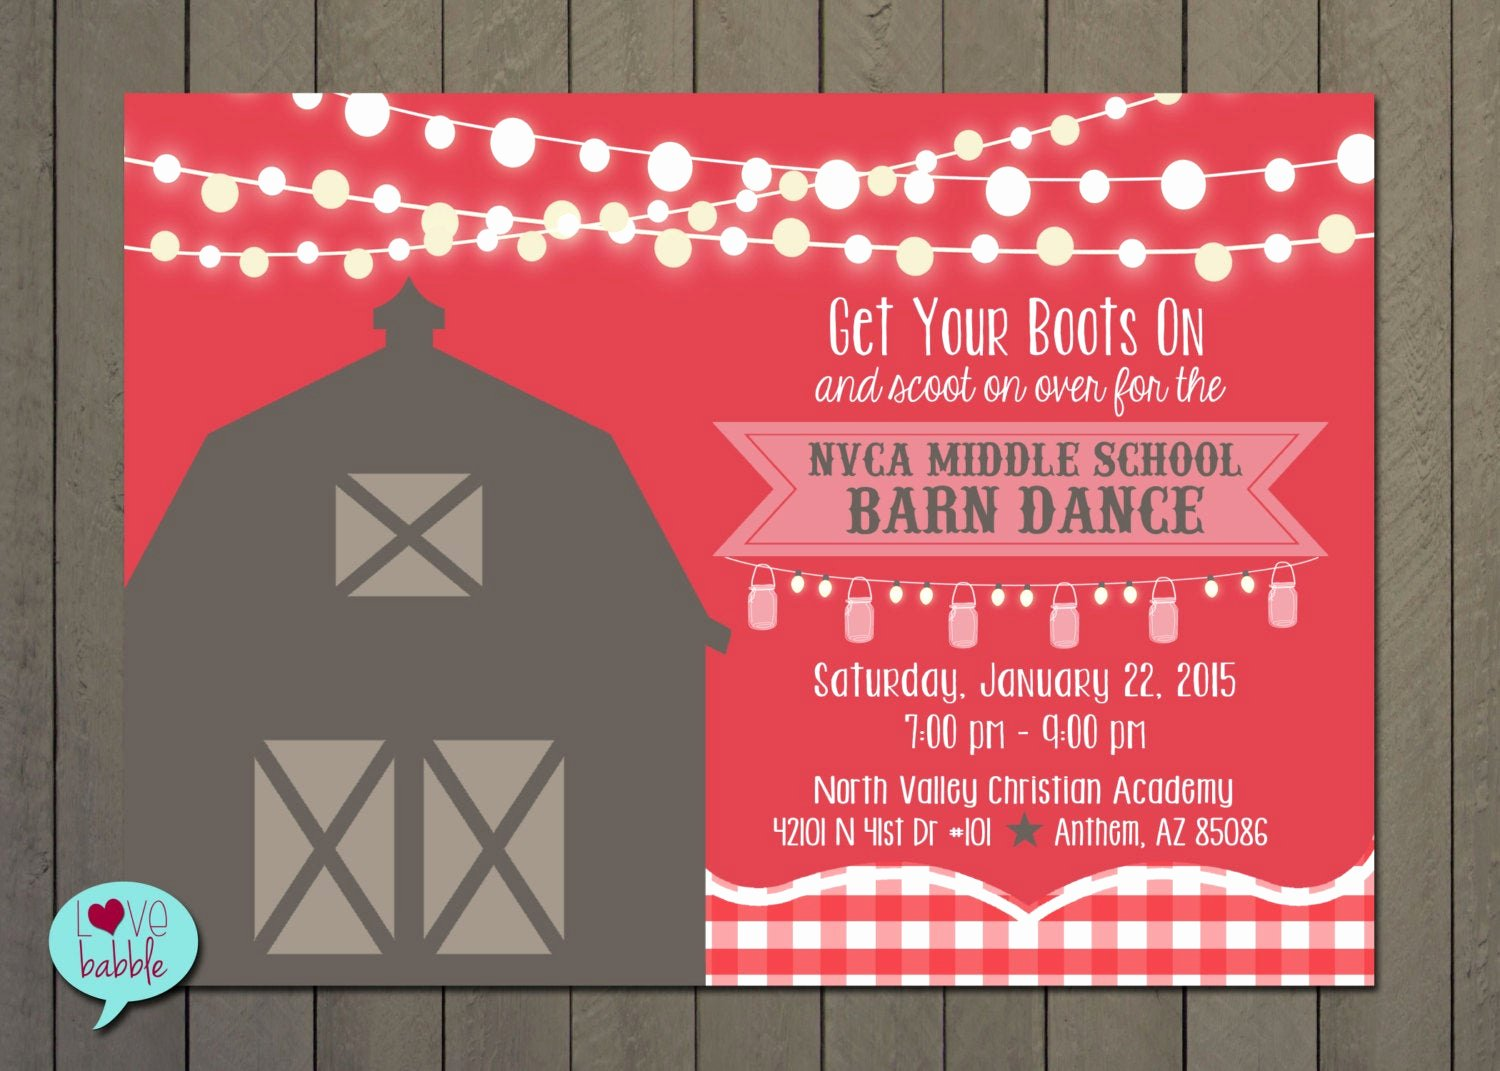 Dance Party Invitation Template Fresh Barn Dance Hoe Down Western Dance School Dance Invitation